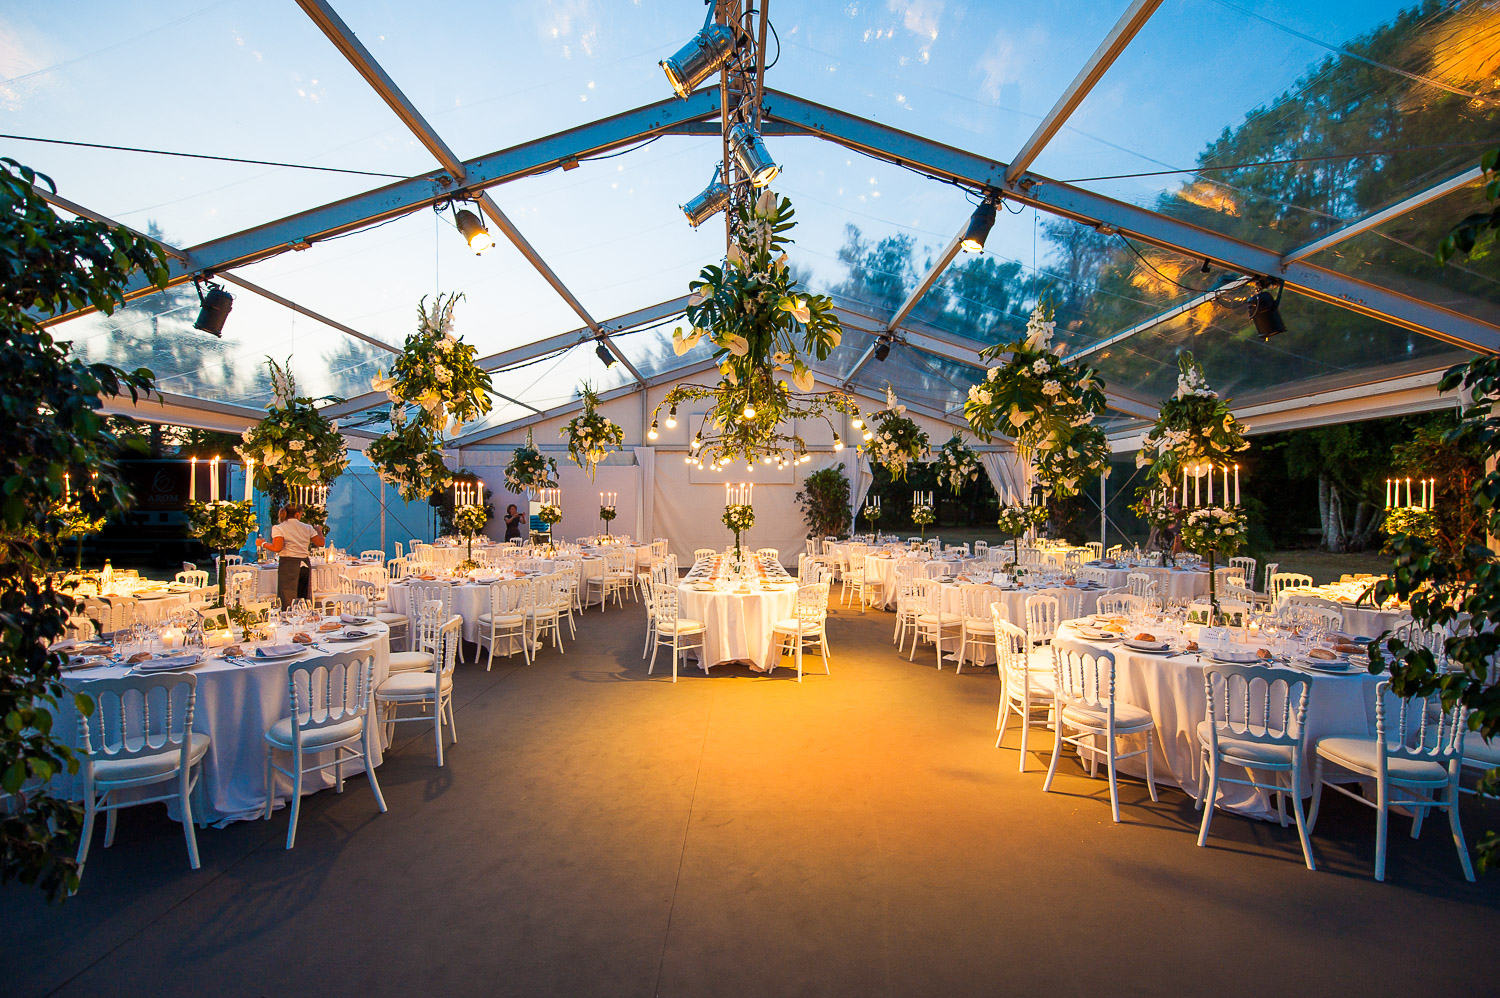 tente cristal mariage ambiance